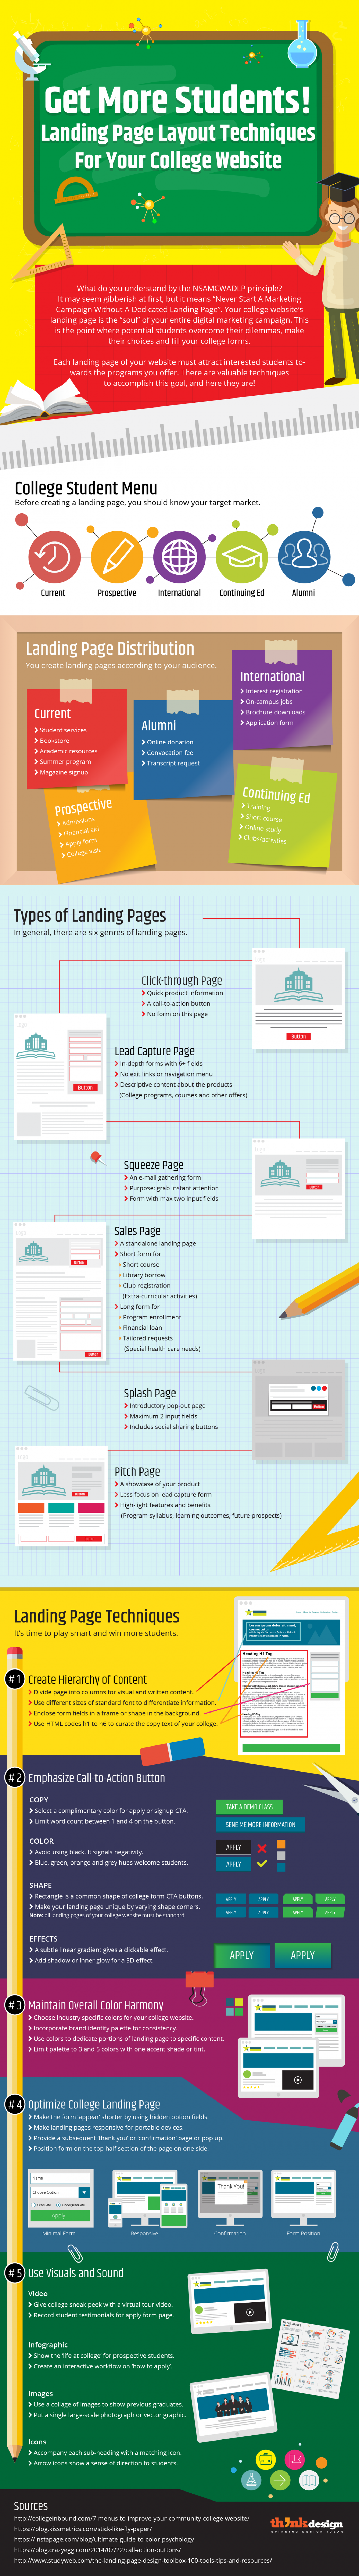 Top Landing Page Layout Techniques For Your College Website Infographic